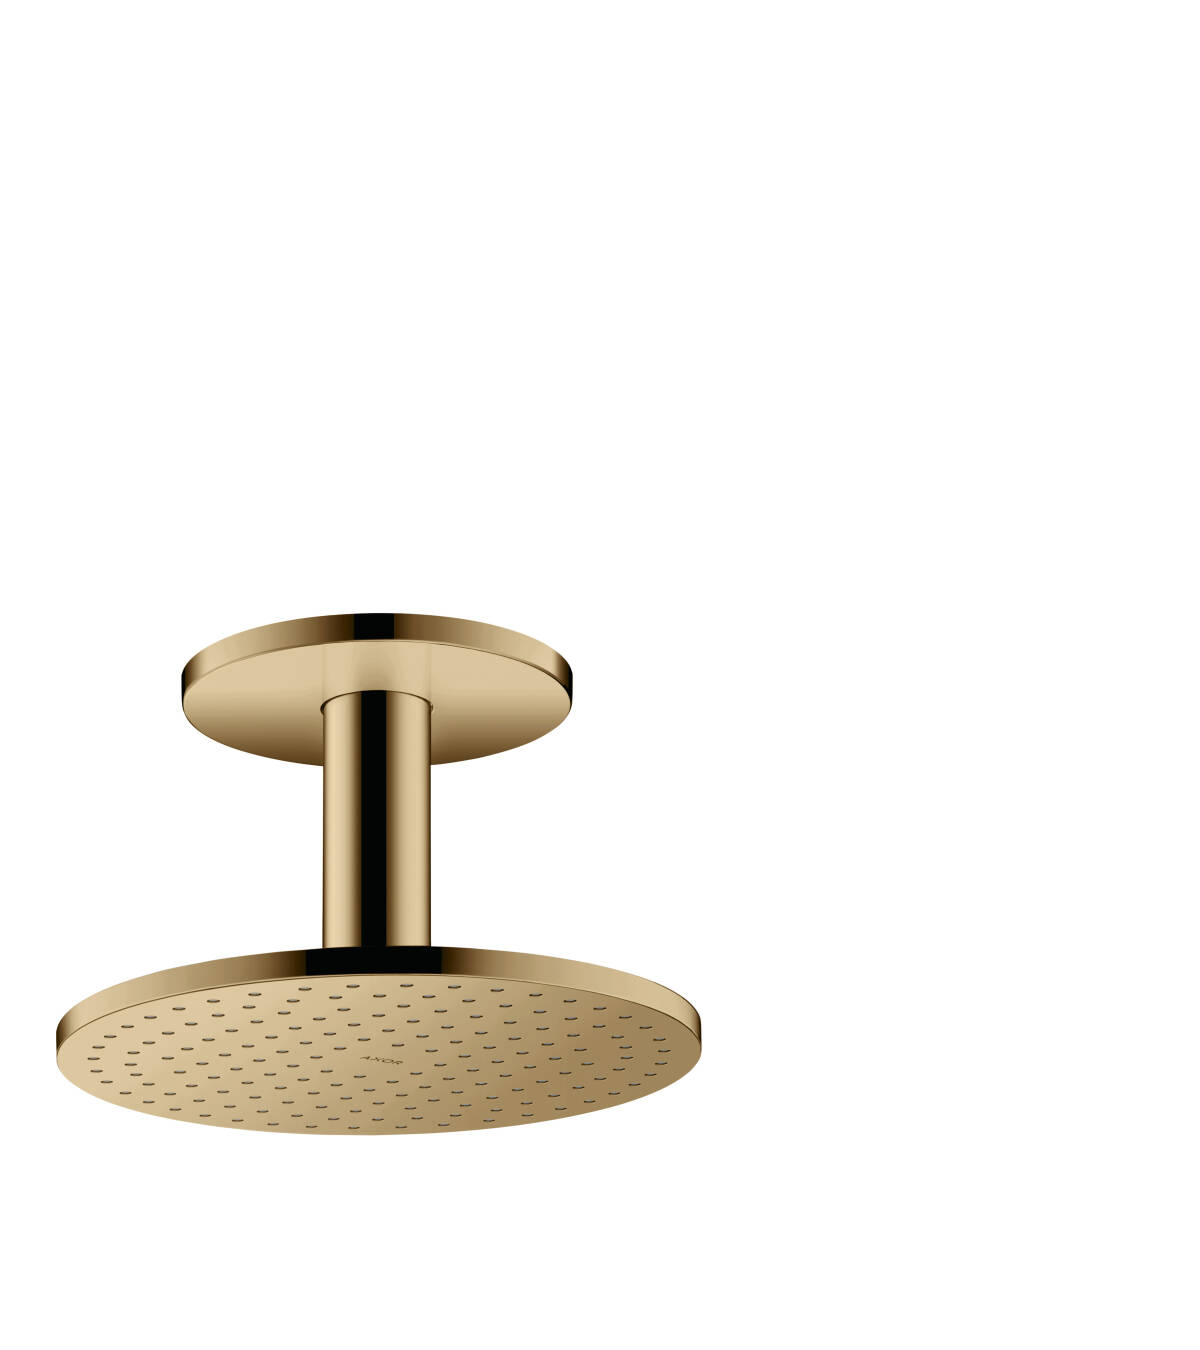 Overhead shower 250 1jet with ceiling connection, Polished Bronze, 35286130